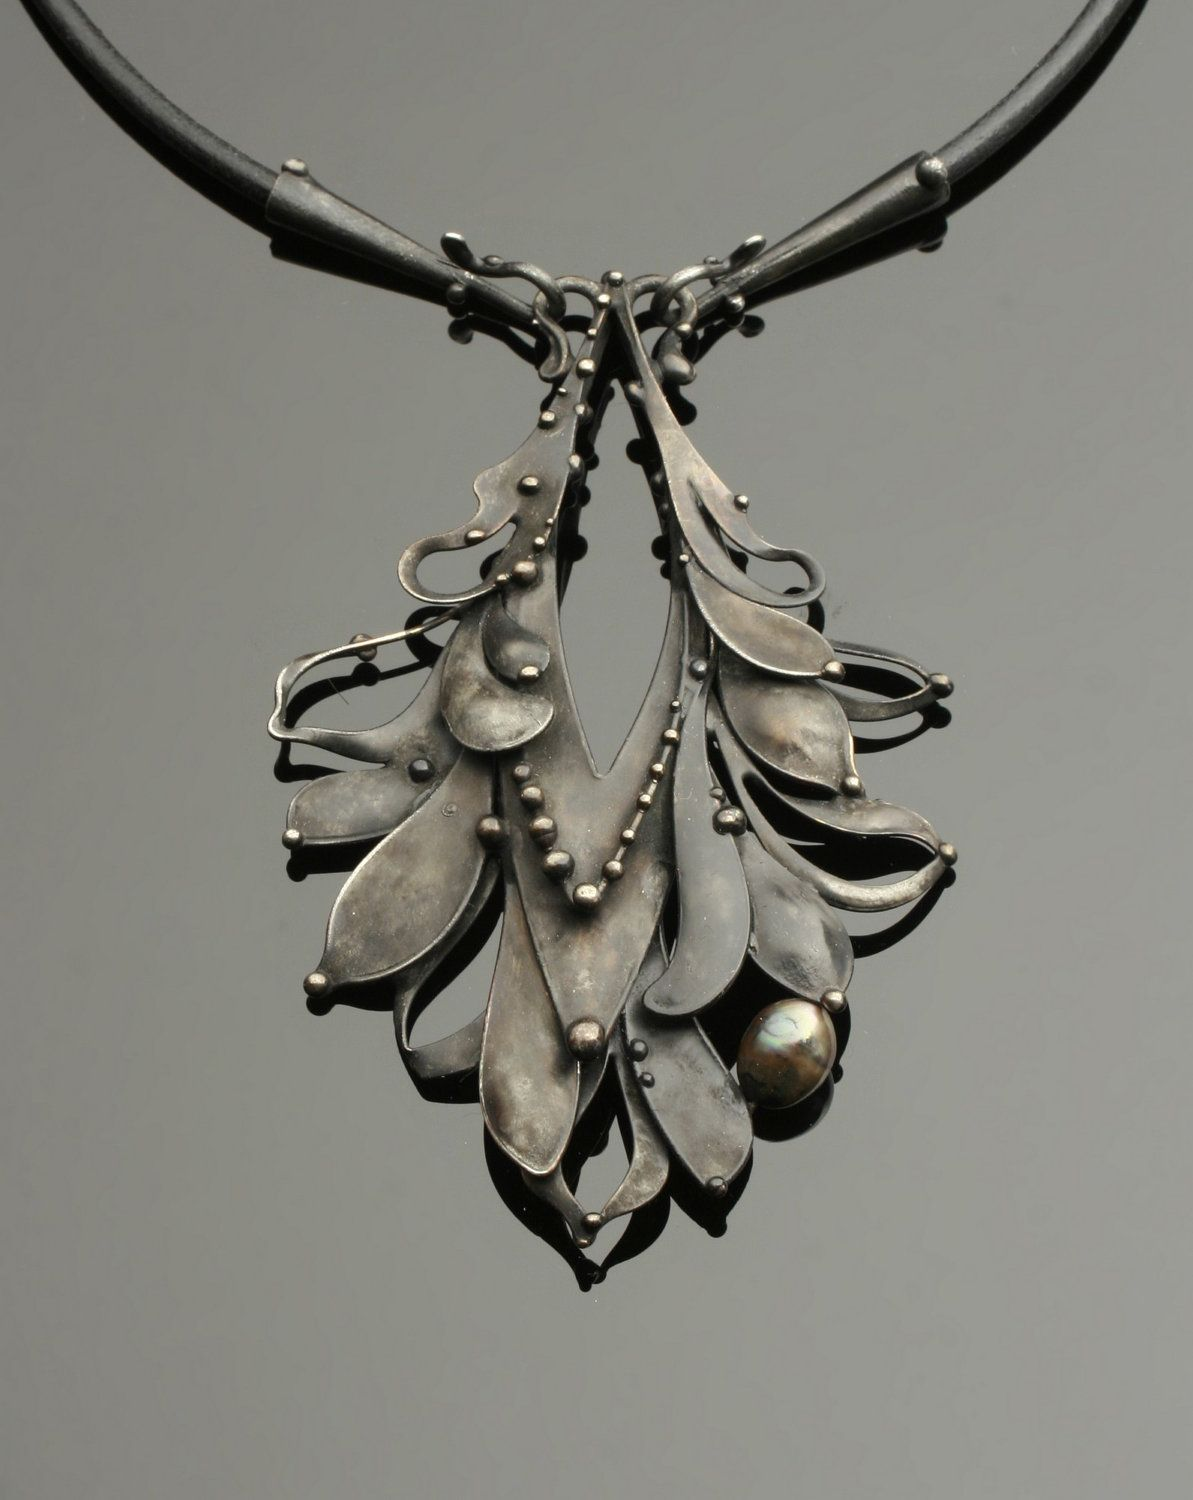 Necklace   Katia Pfipsen Olivova.  Black pearls in mixed metal (sterling silver, copper and lead-free solder) hung on black leather cord. LOVE!